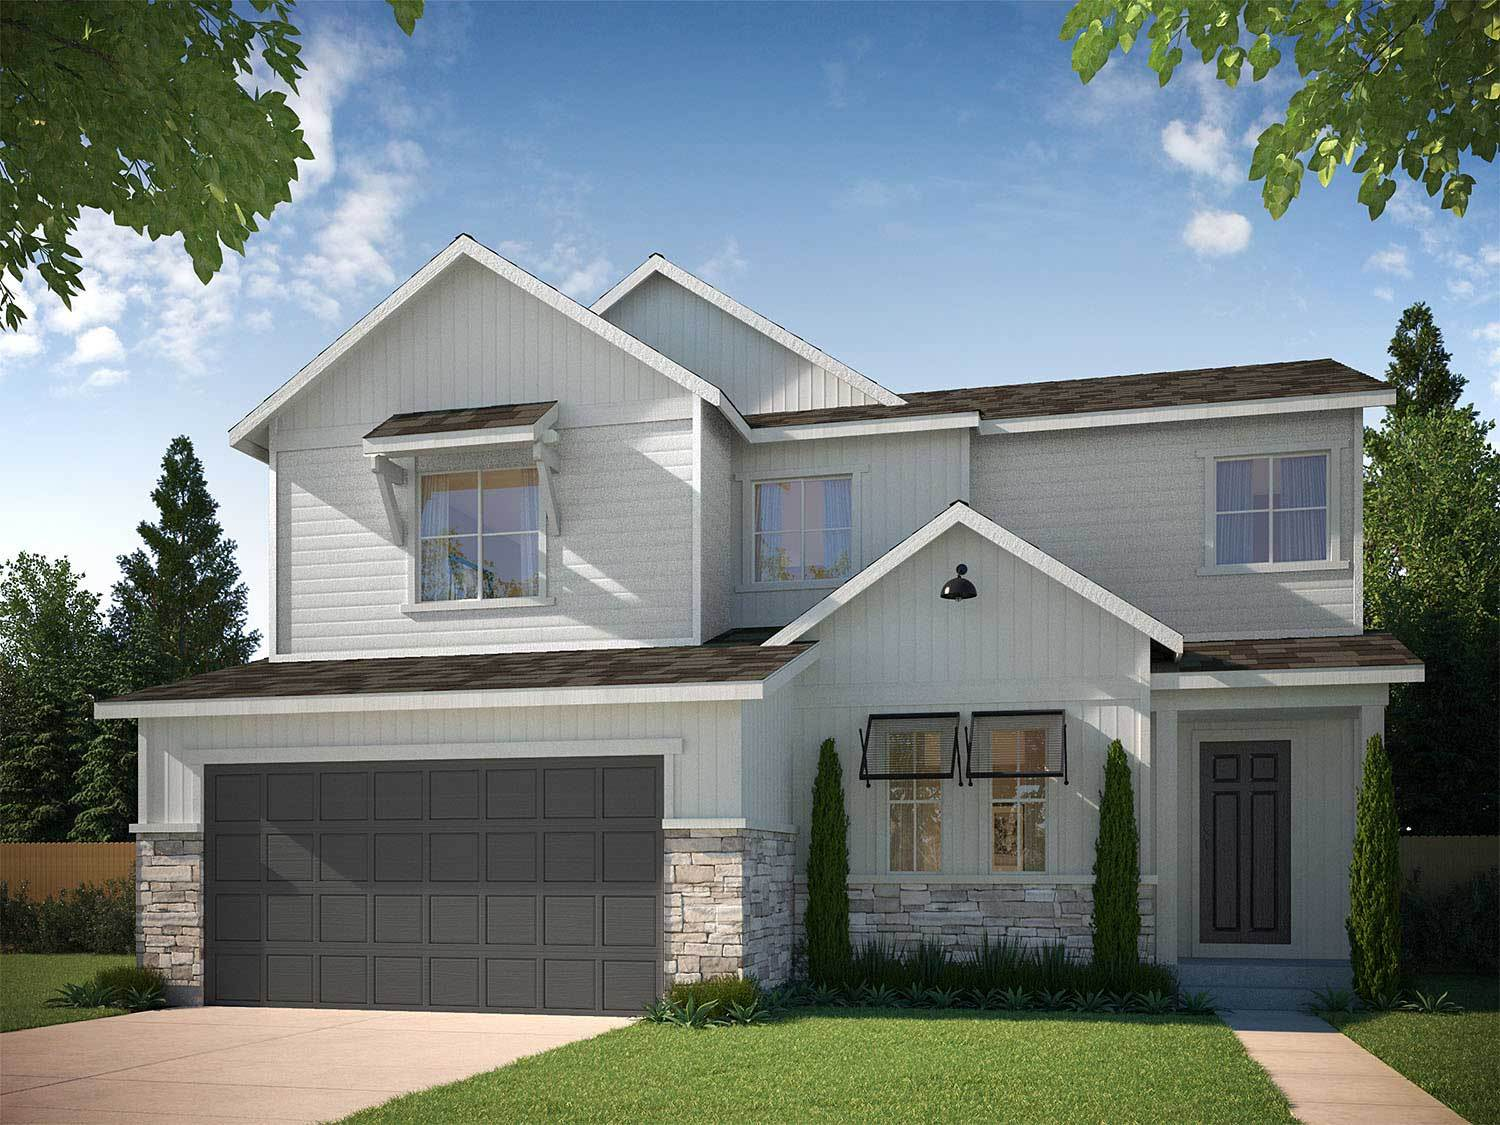 Tri pointe homes terrain debut collection in ravenwood for Ravenwood homes